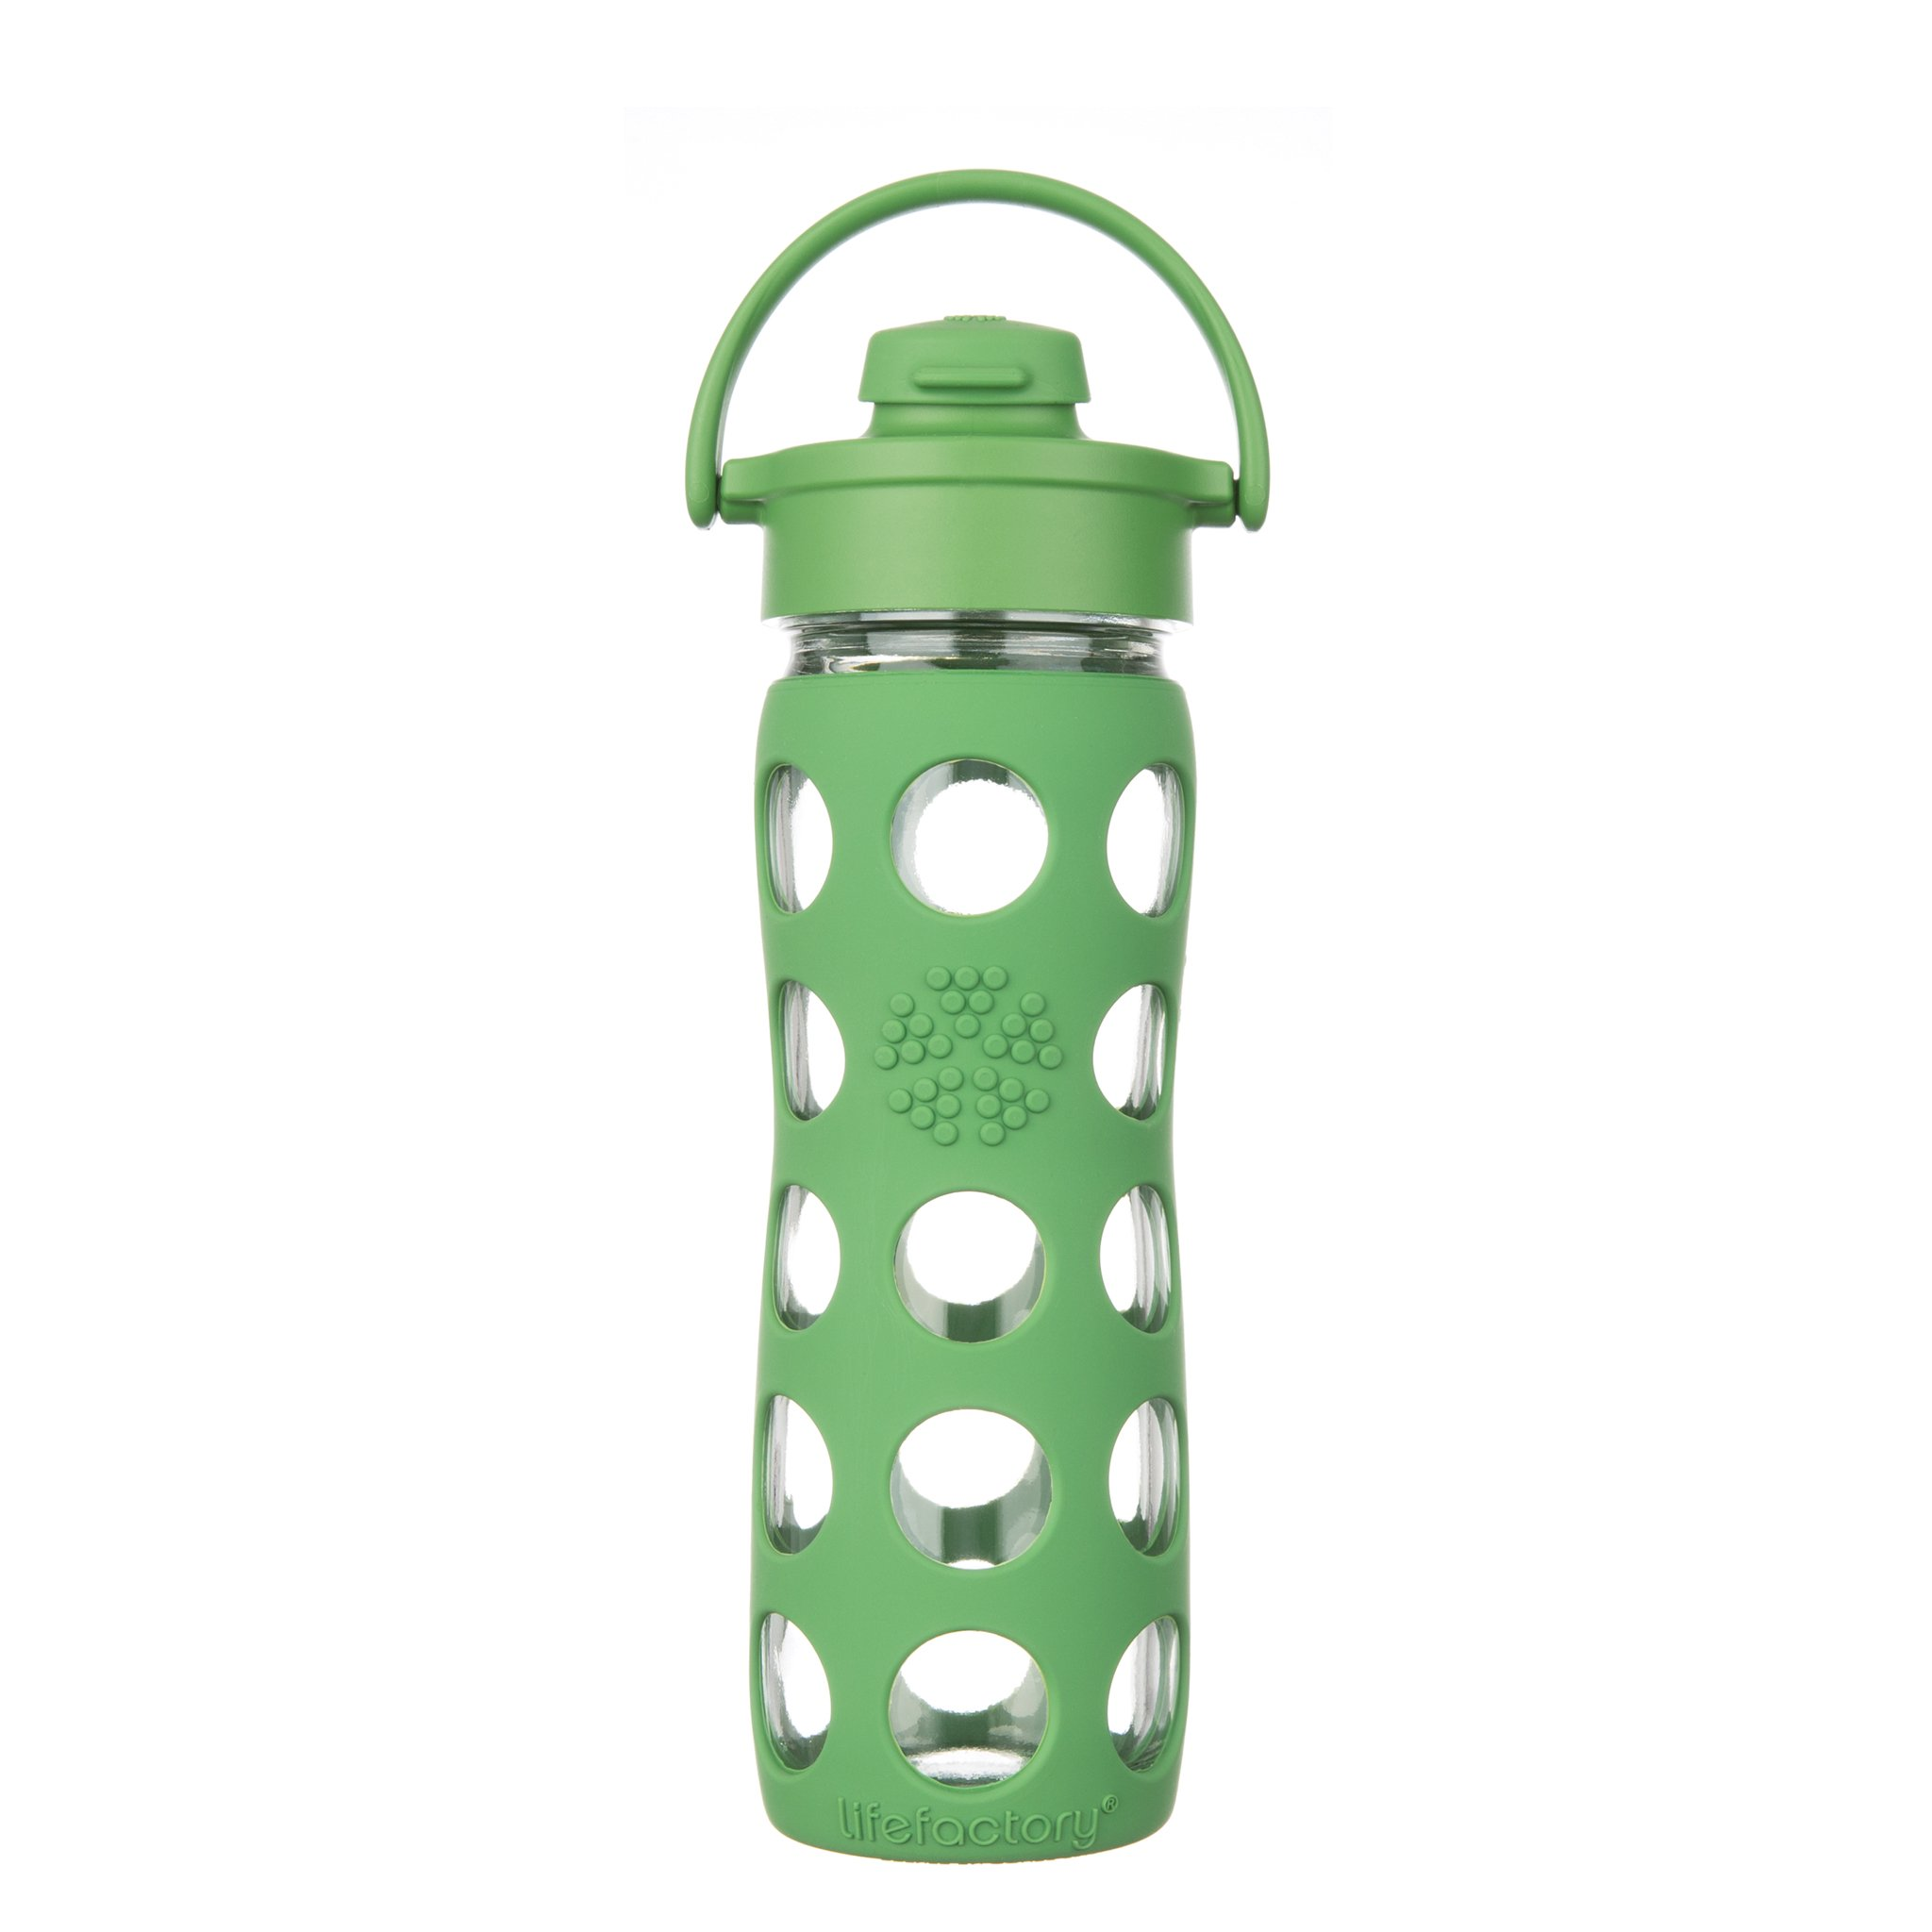 Lifefactory 16-Ounce BPA-Free Glass Water Bottle with Flip Cap and Silicone Sleeve, Grass Green